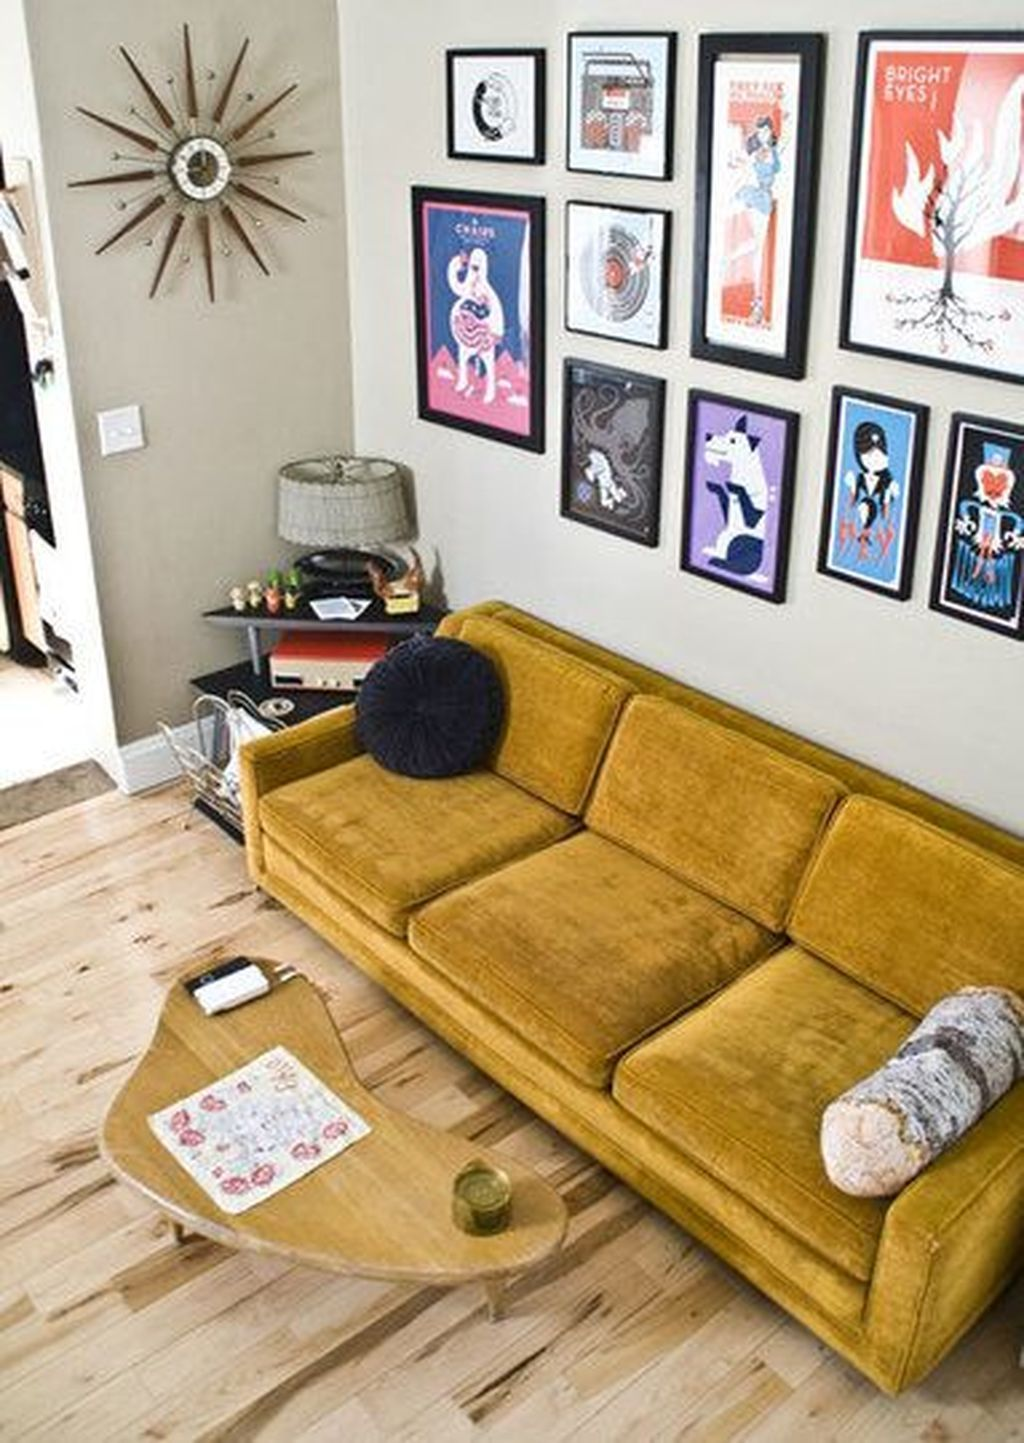 65 Great Modern Interior Design Ideas To Make Your Living Room Look Beautiful Hoomdesign 6: Perfect Living Room, Yellow Sofa, Yellow Couch